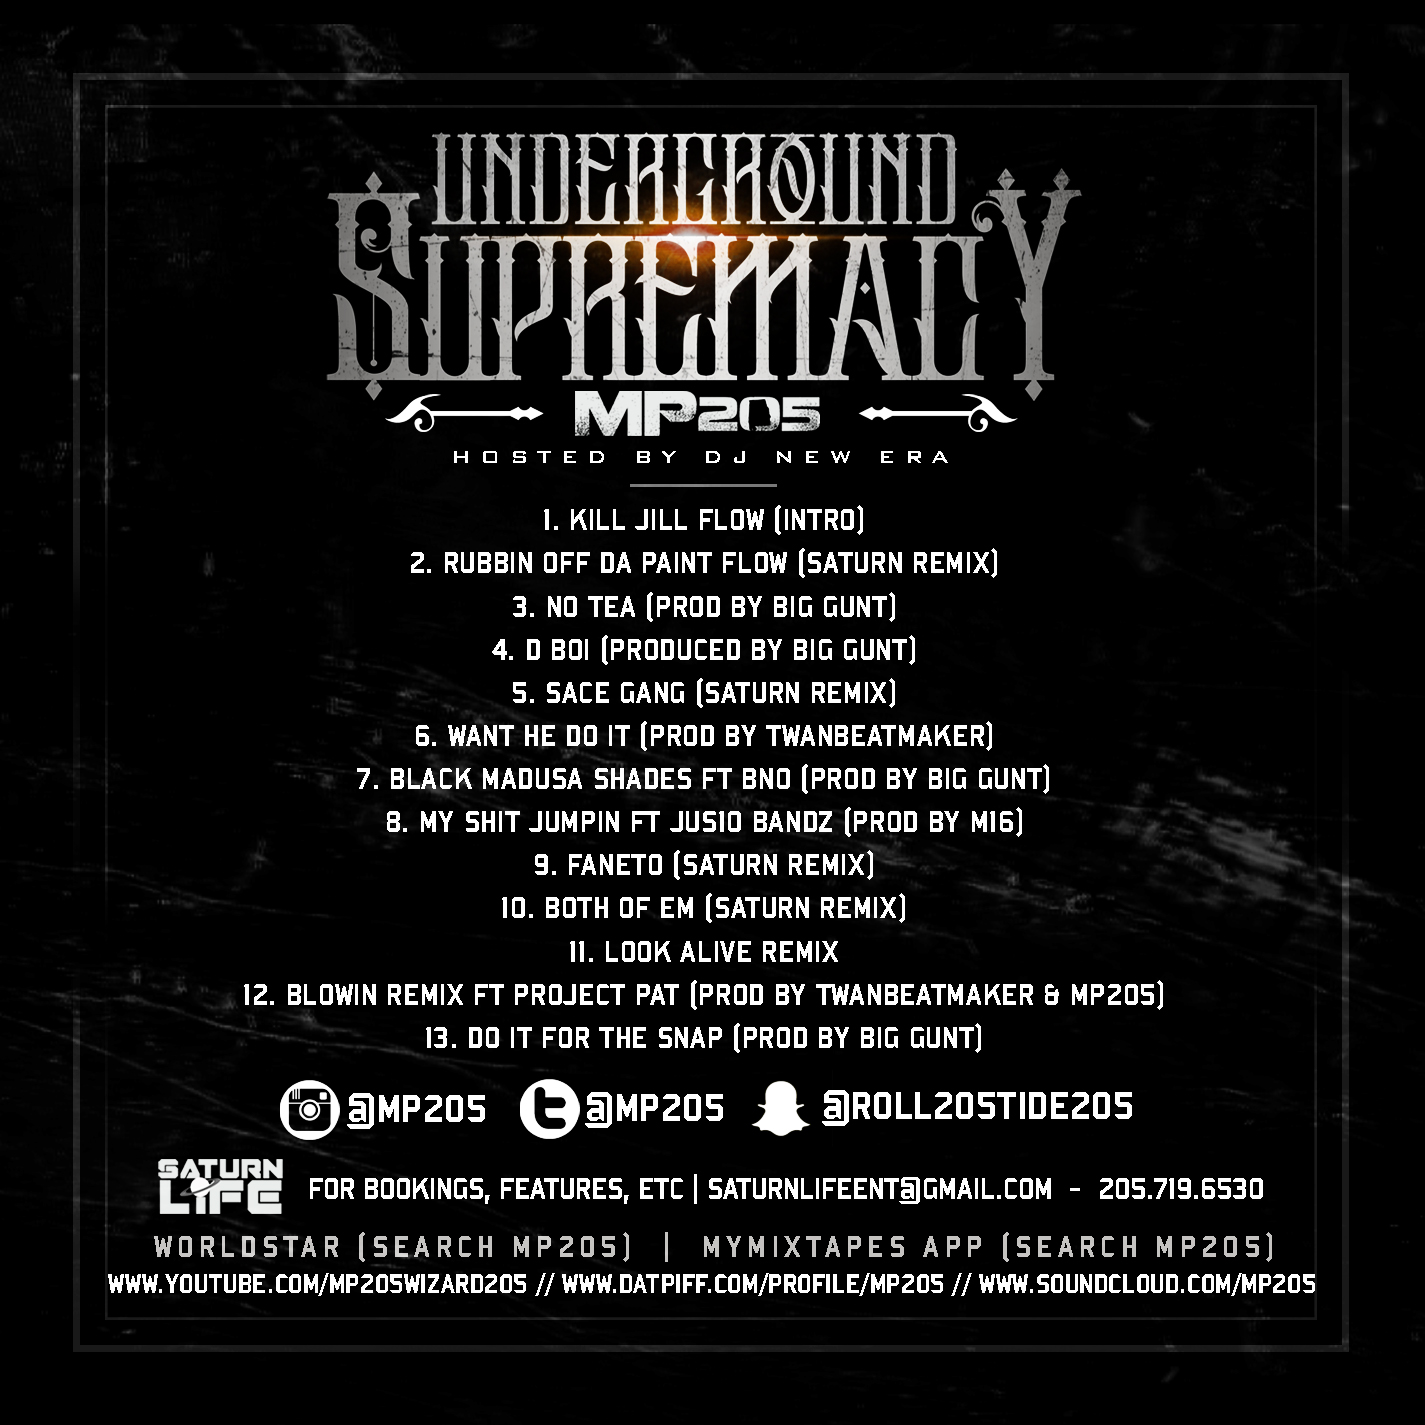 MP205 - Underground Supremacy | Spinrilla